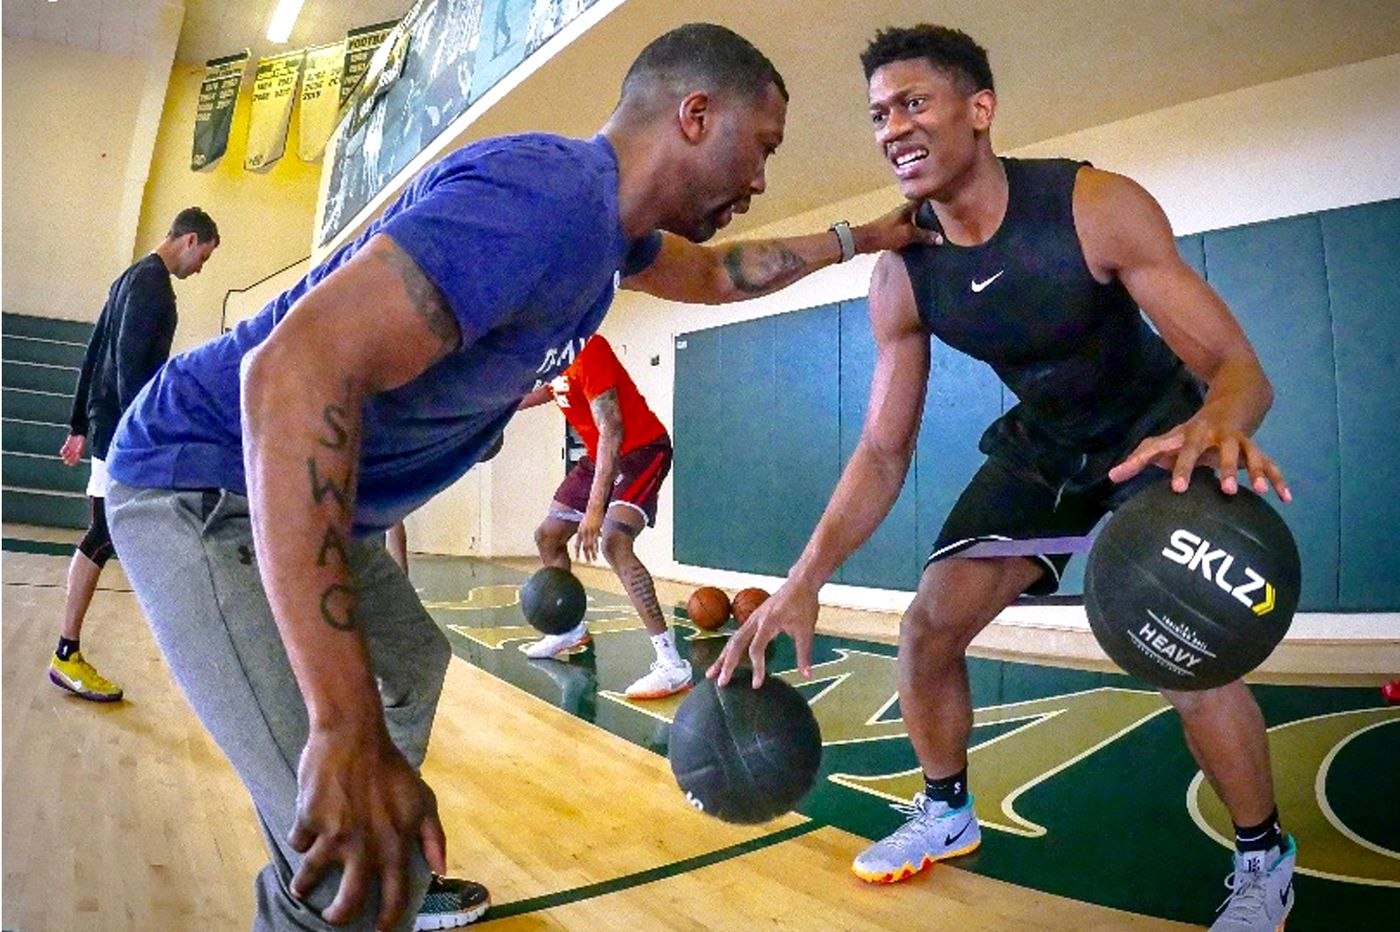 NBA draft: De'Andre Hunter and the Philly barbershop conversation key to his development | Mike Jensen